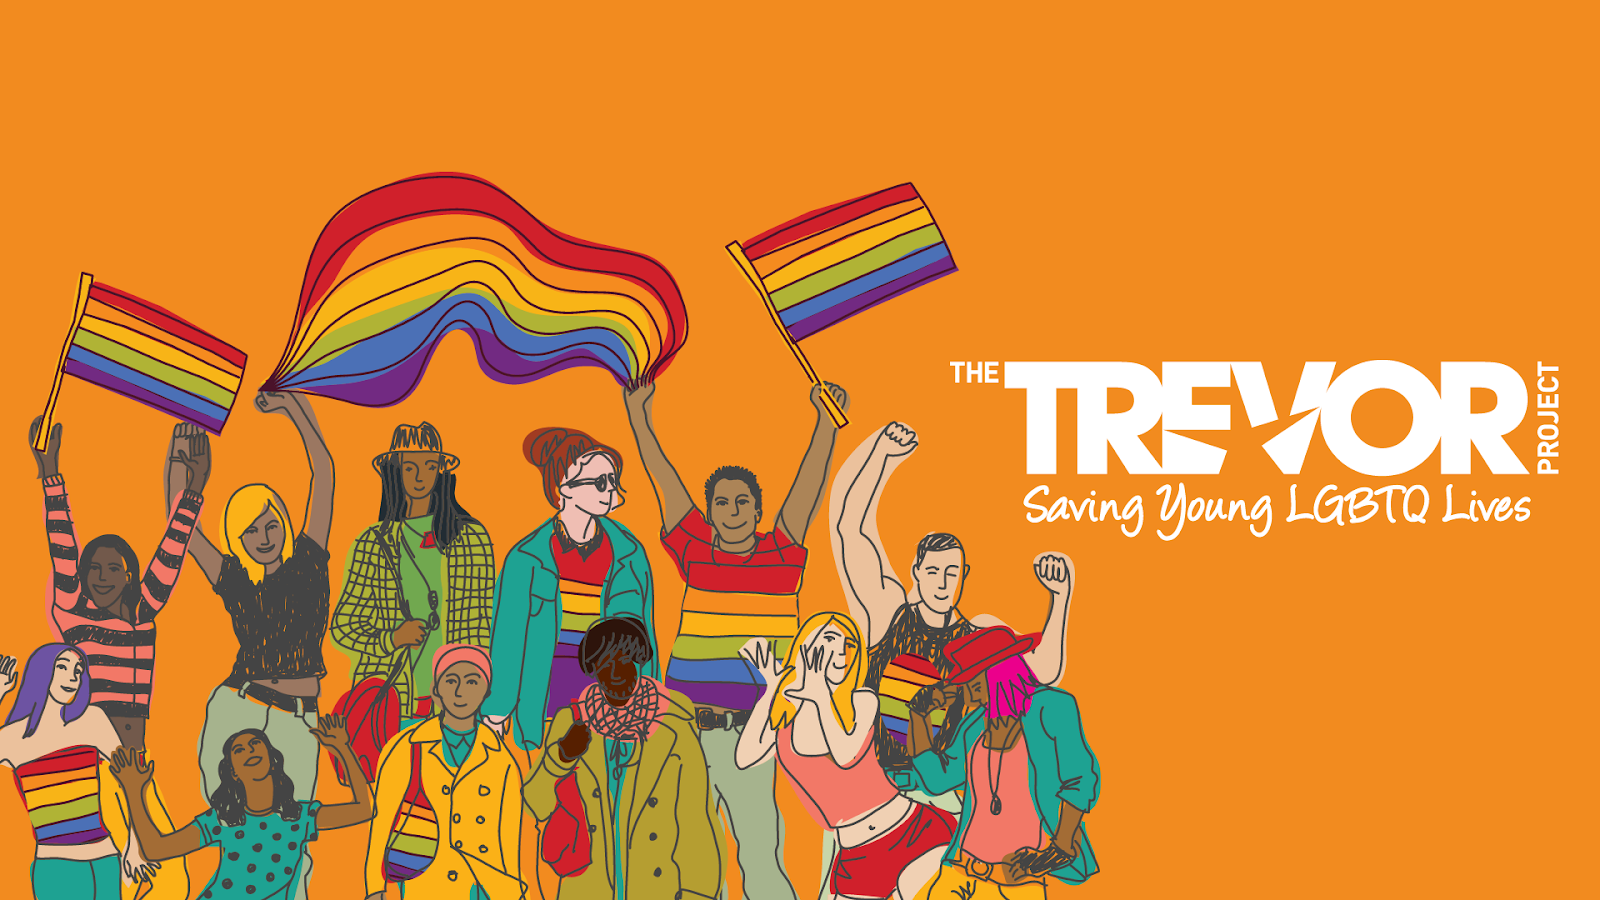 Illustration for the Trevor Project